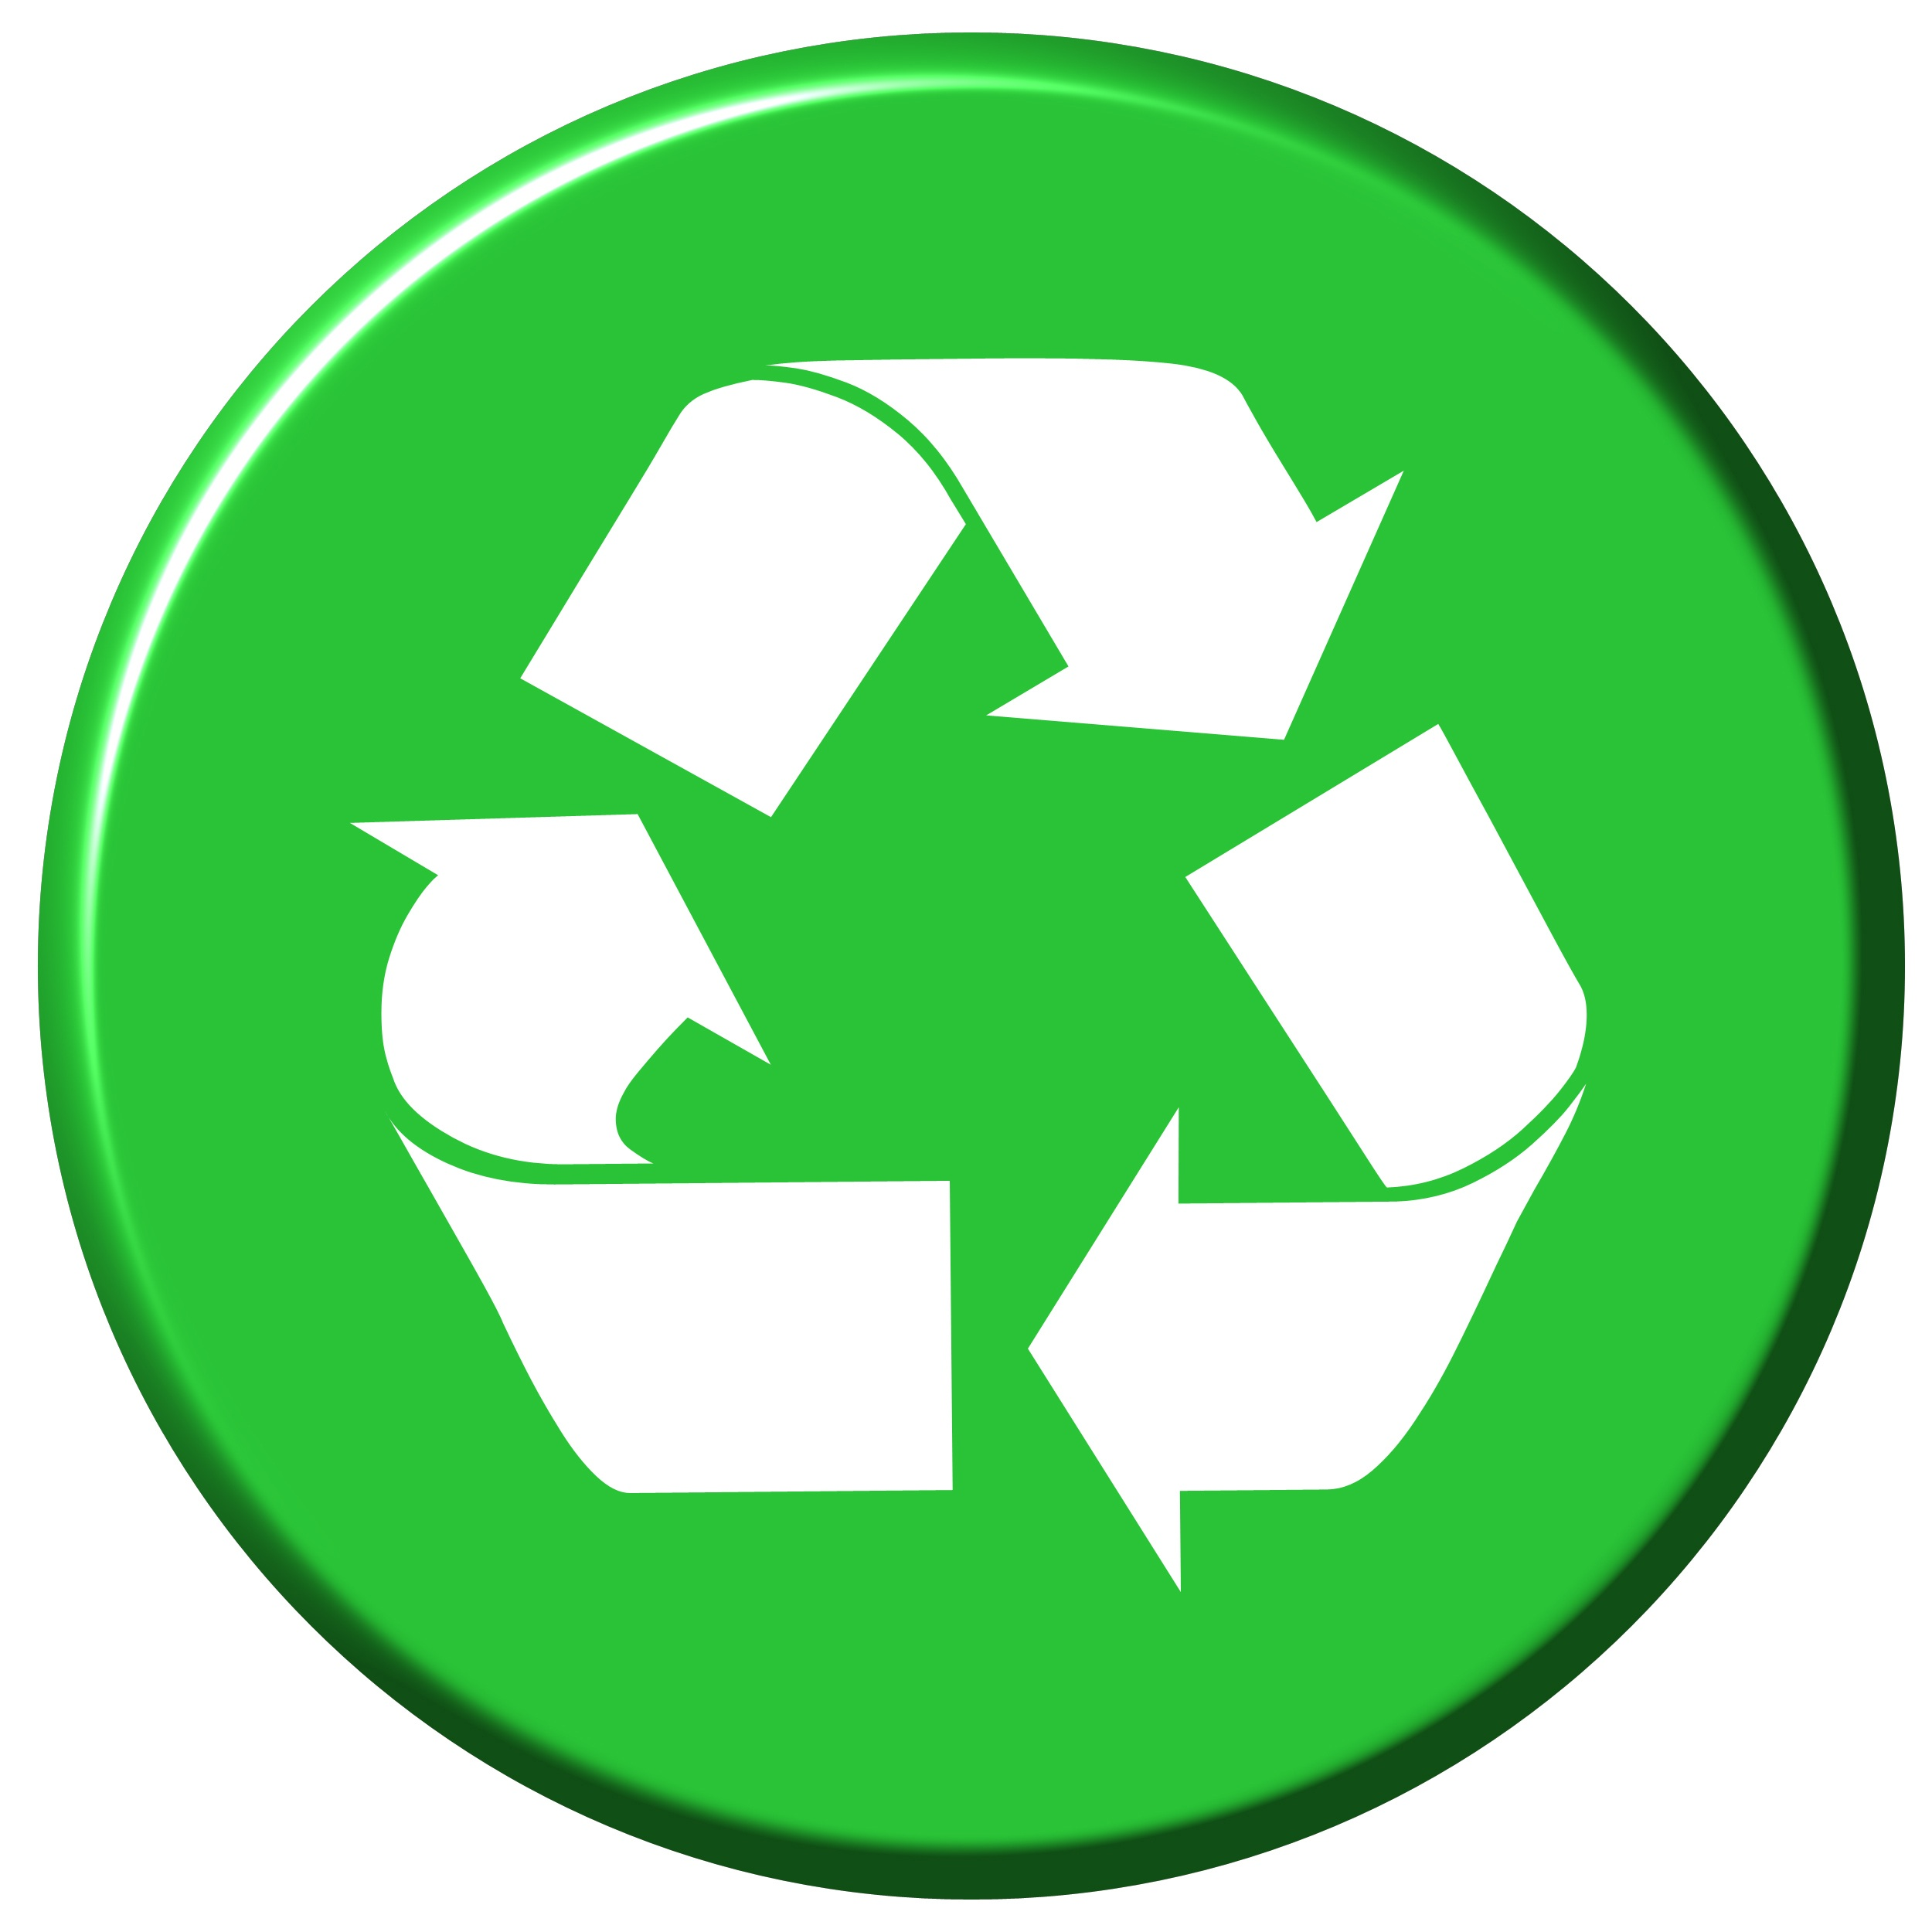 Printable Recycling Signs - ClipArt Best